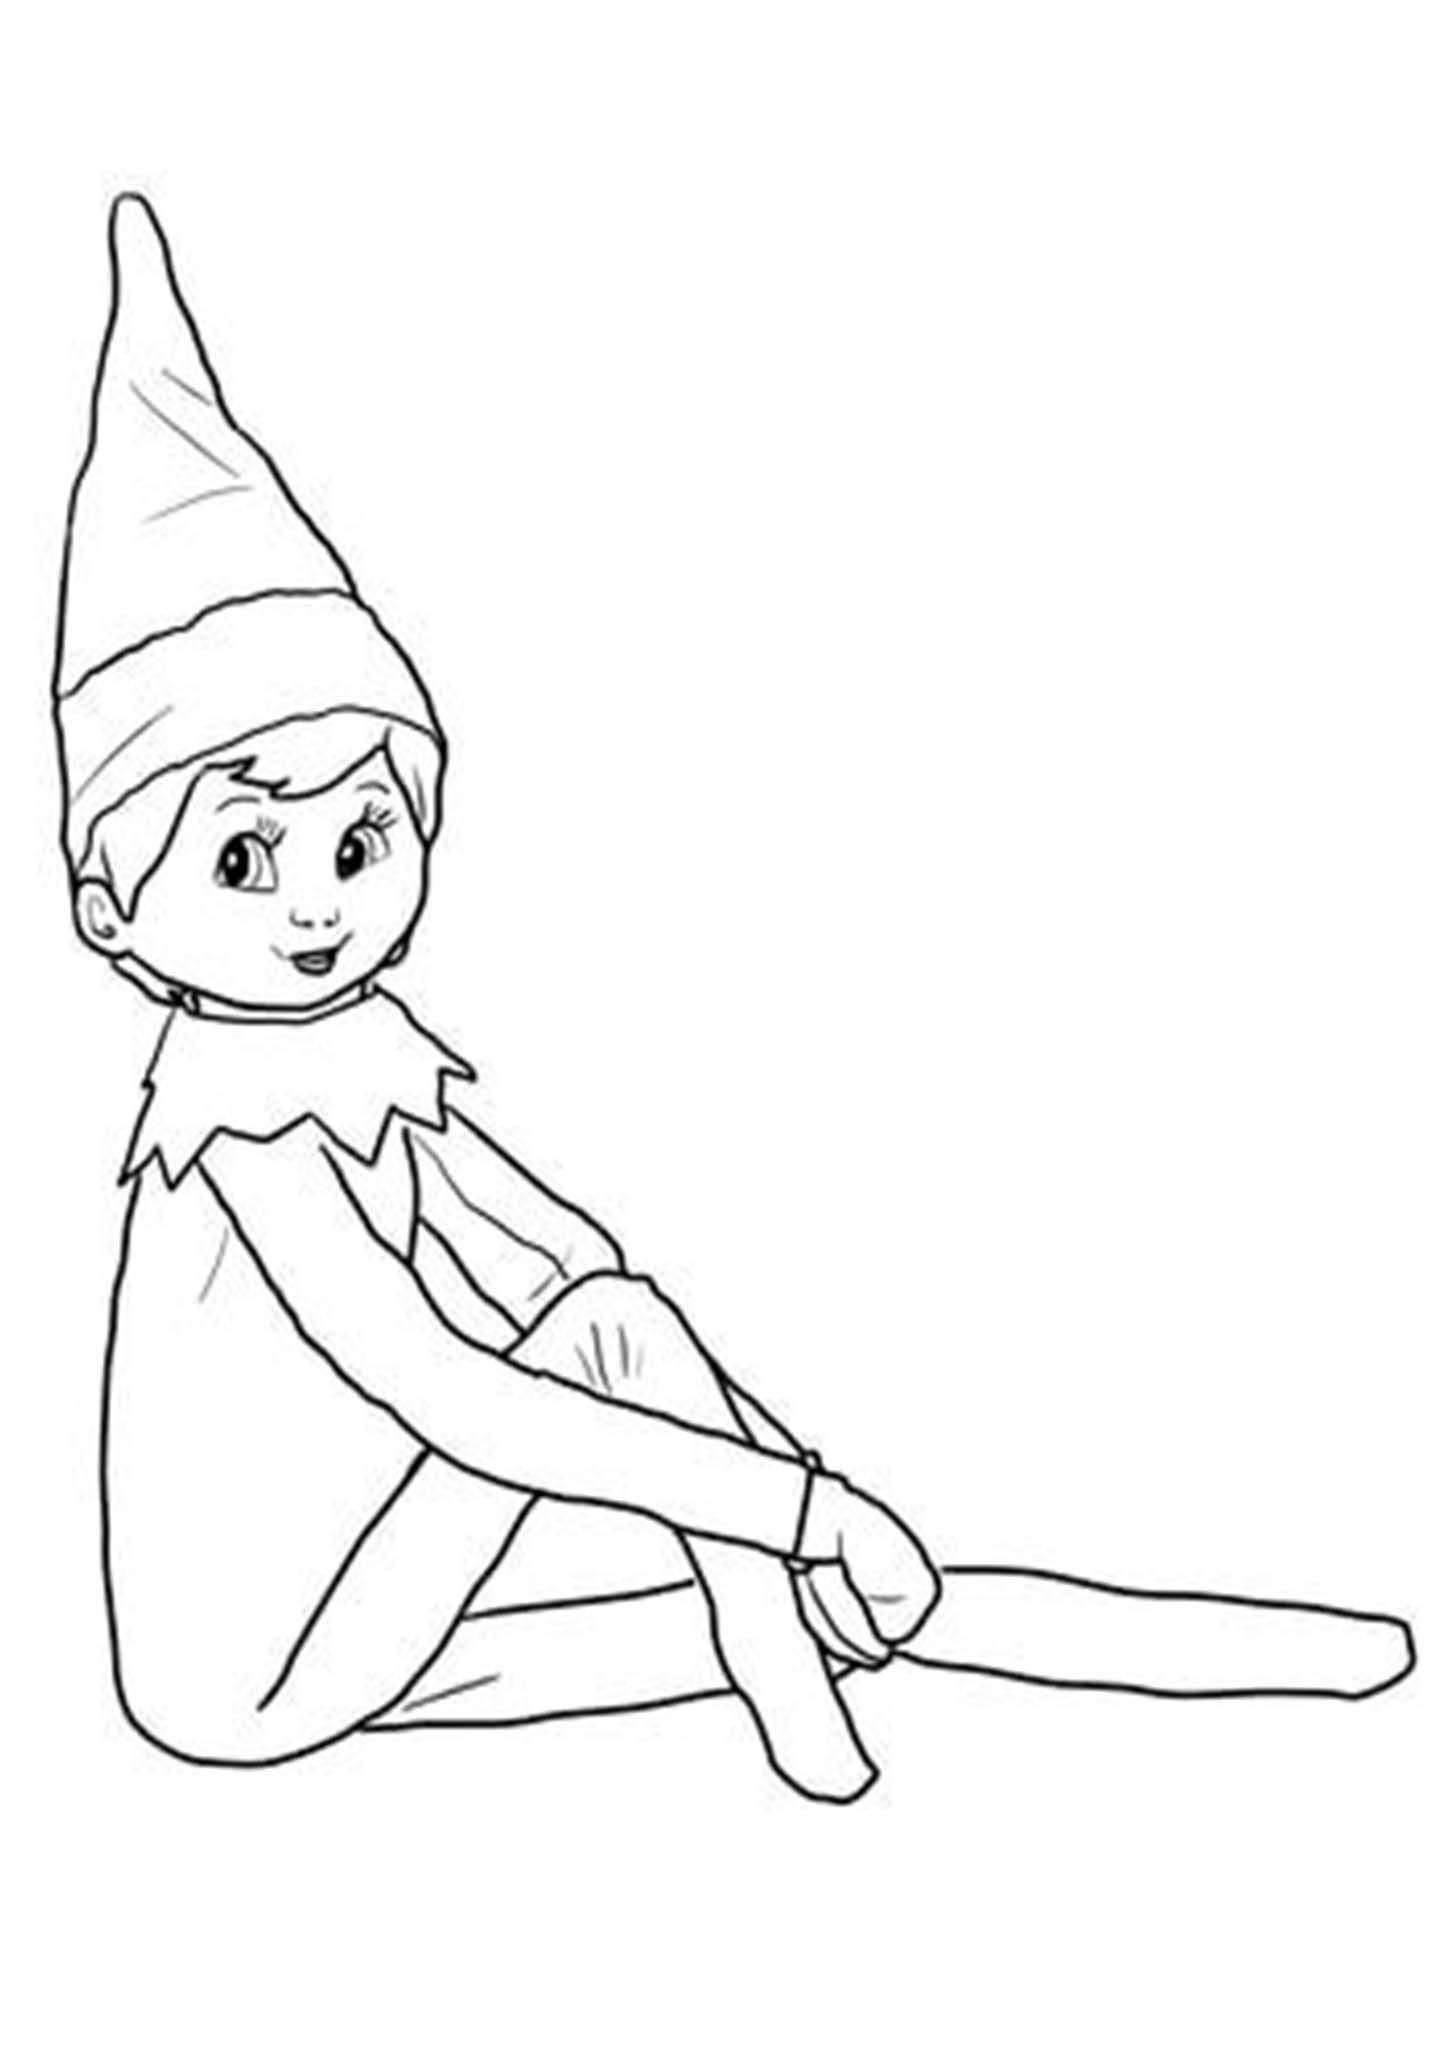 Free Printable Elf On The Shelf Coloring Pages Christmas Elf Girl Elf Christmas Coloring Pages